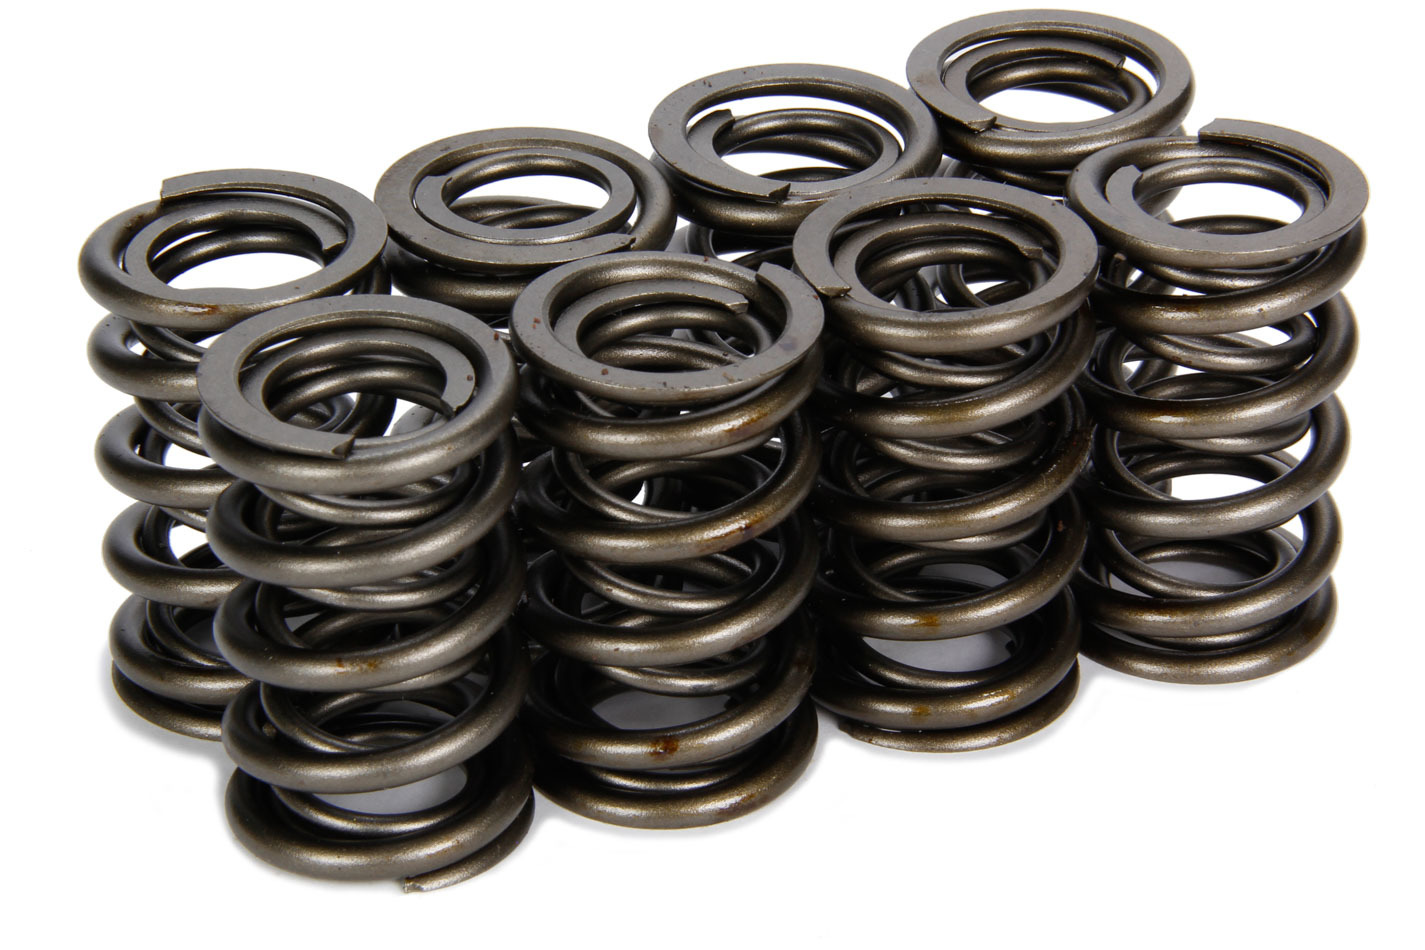 Isky Cams 625/626-8 Valve Spring, Dual Spring / Damper, 300 lb/in Spring Rate, 0.940 in Coil Bind, 1.235 in OD, Set of 8